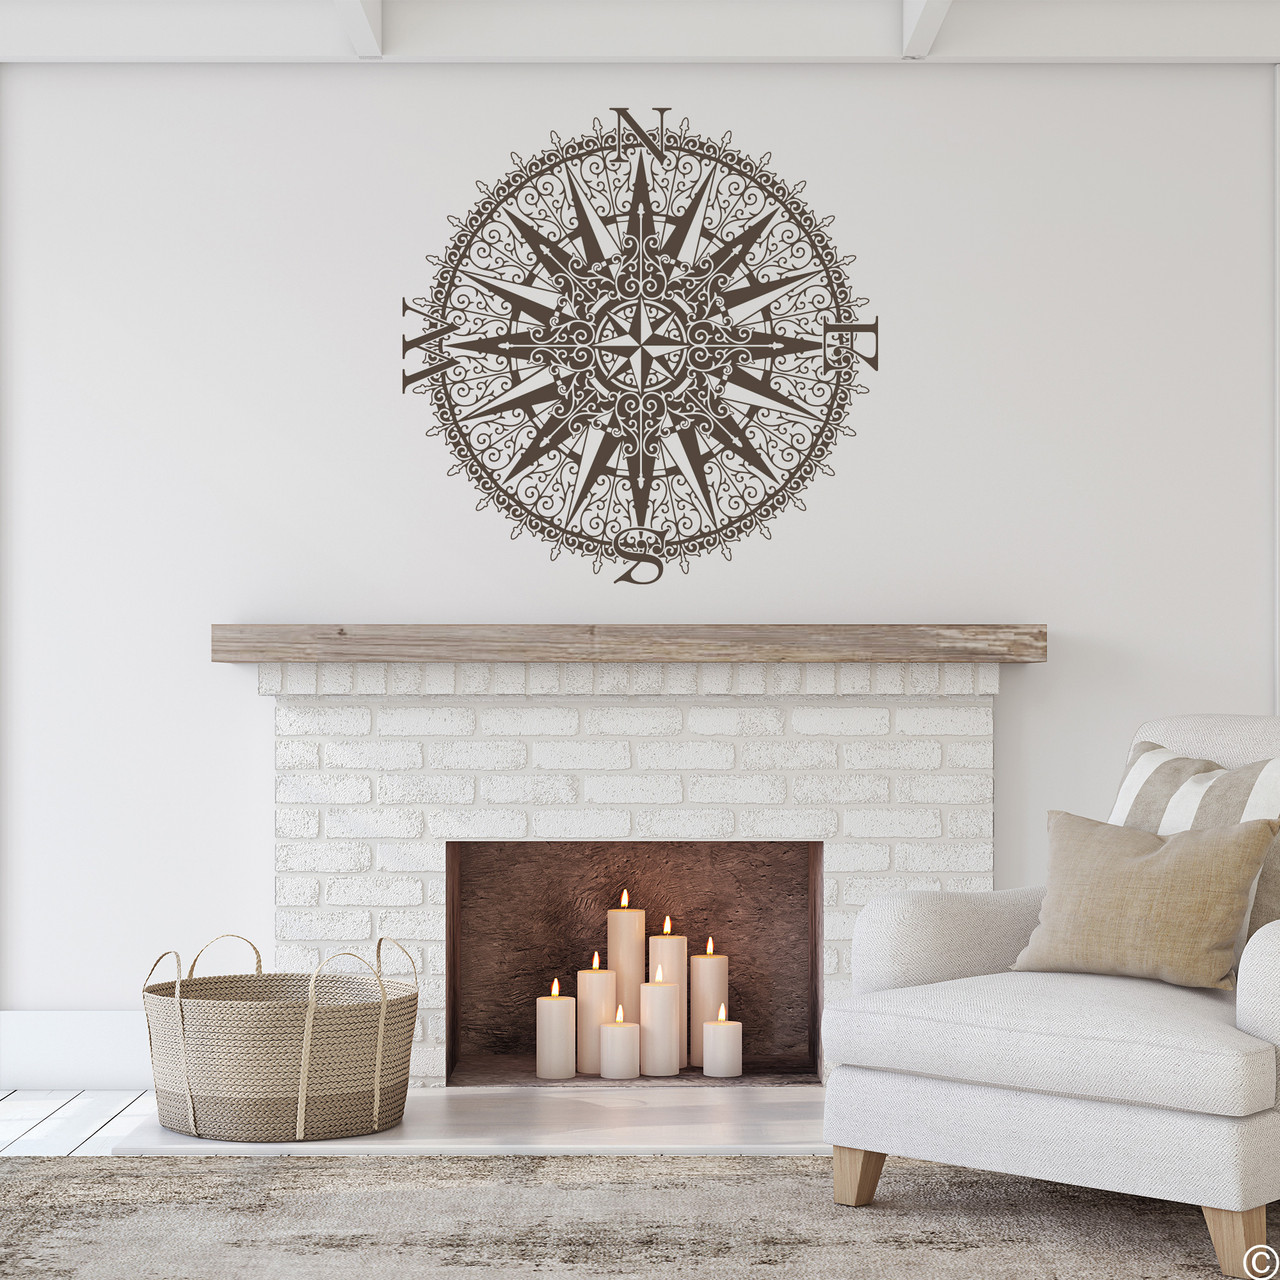 The Sherlock compass wall decal, shown here in brown color.